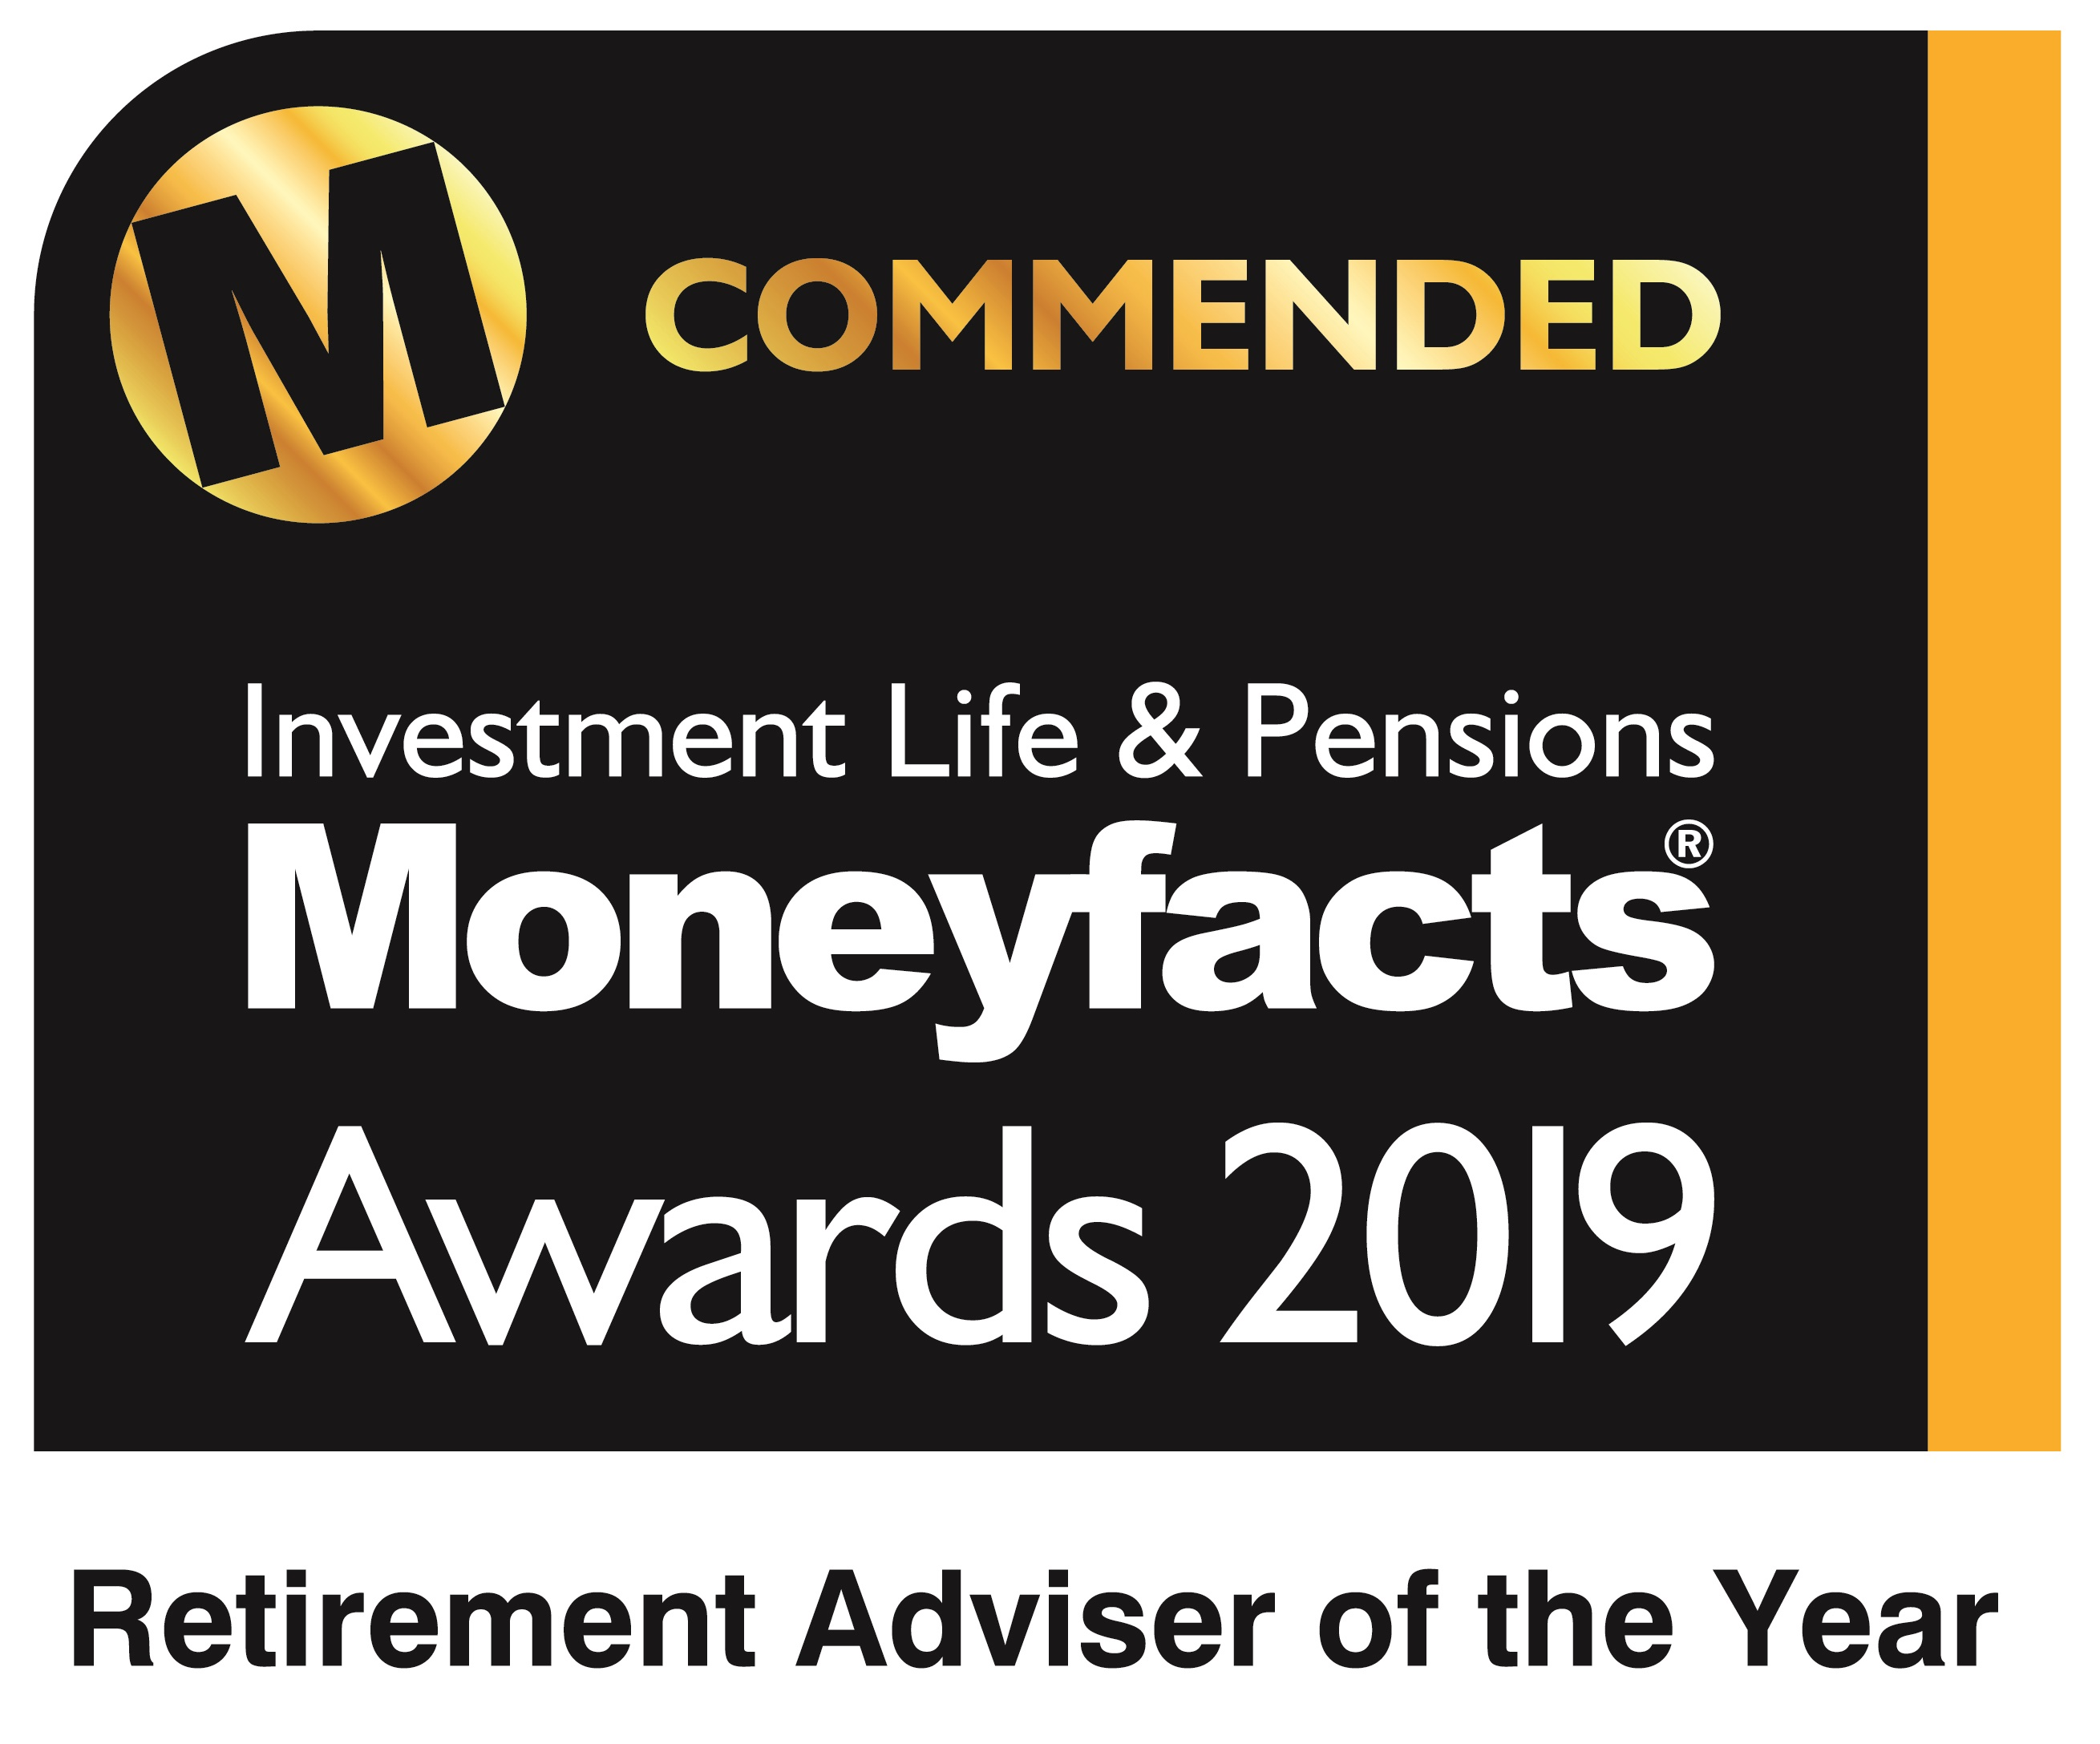 Investment Life & Pensions Moneyfacts Awards 2019